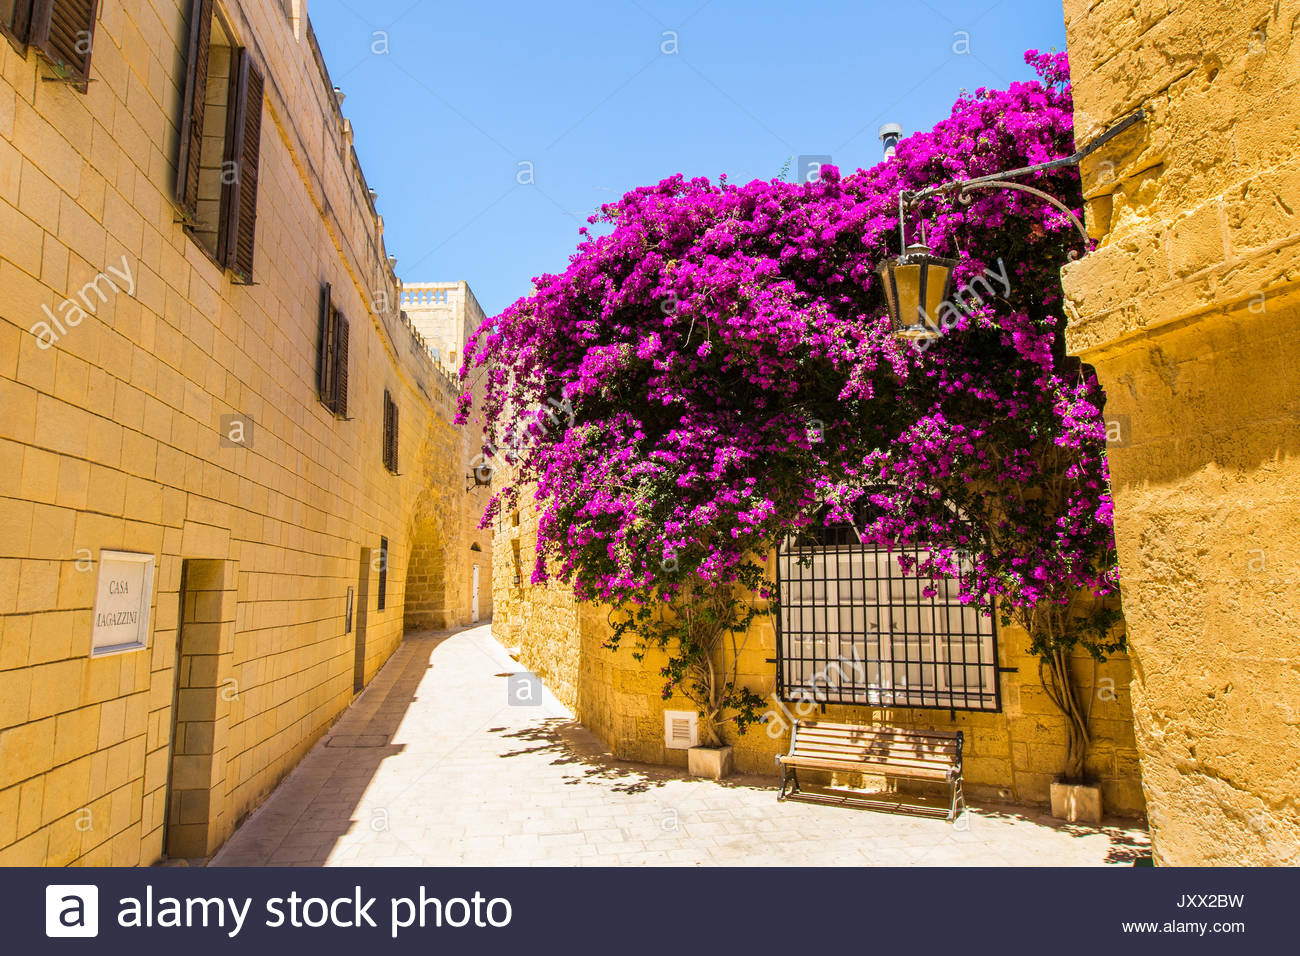 bench under a purple flowering bougainvillea in a narrow lane of mdina, malta - Stock Image